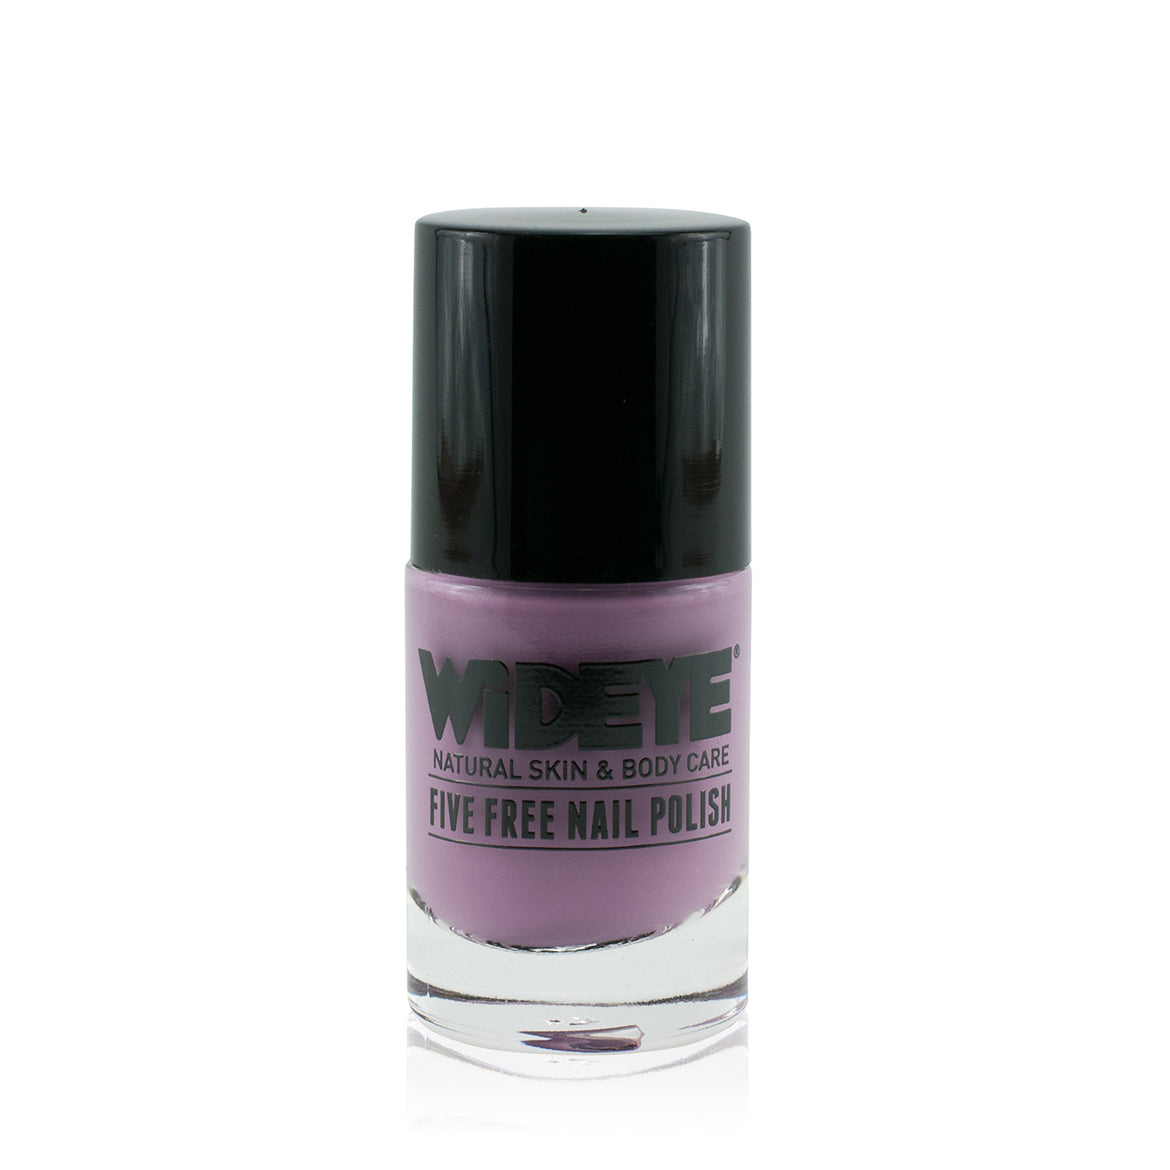 Mauve nail polish in glass bottle by WiDEYE.